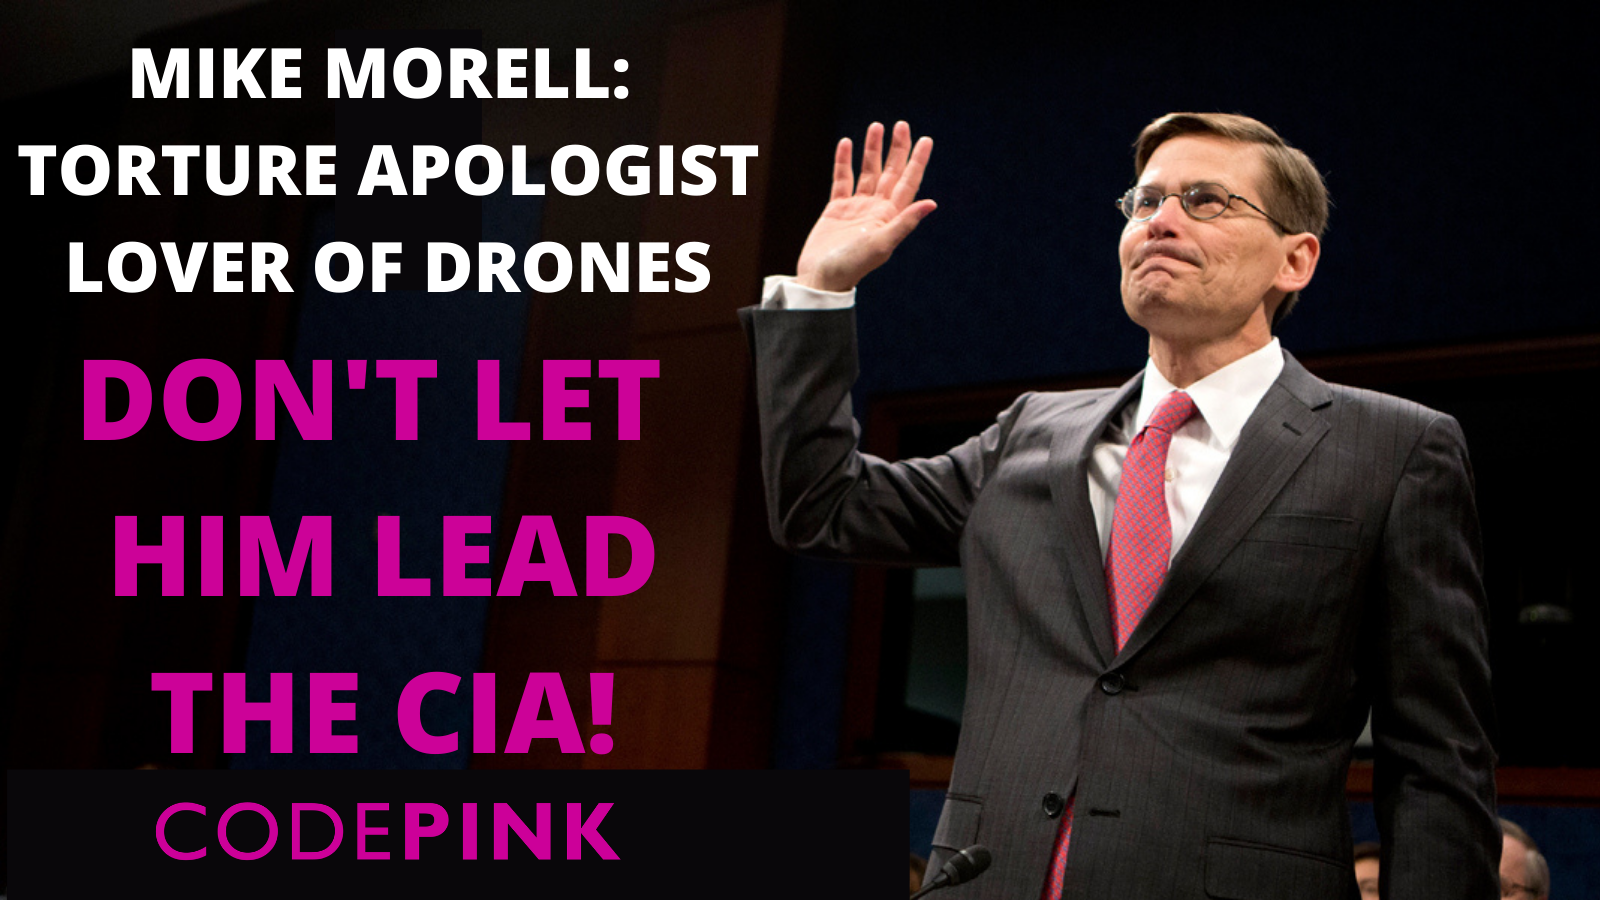 TORTURE_APOLOGIST_LOVER_OF_DRONES.png